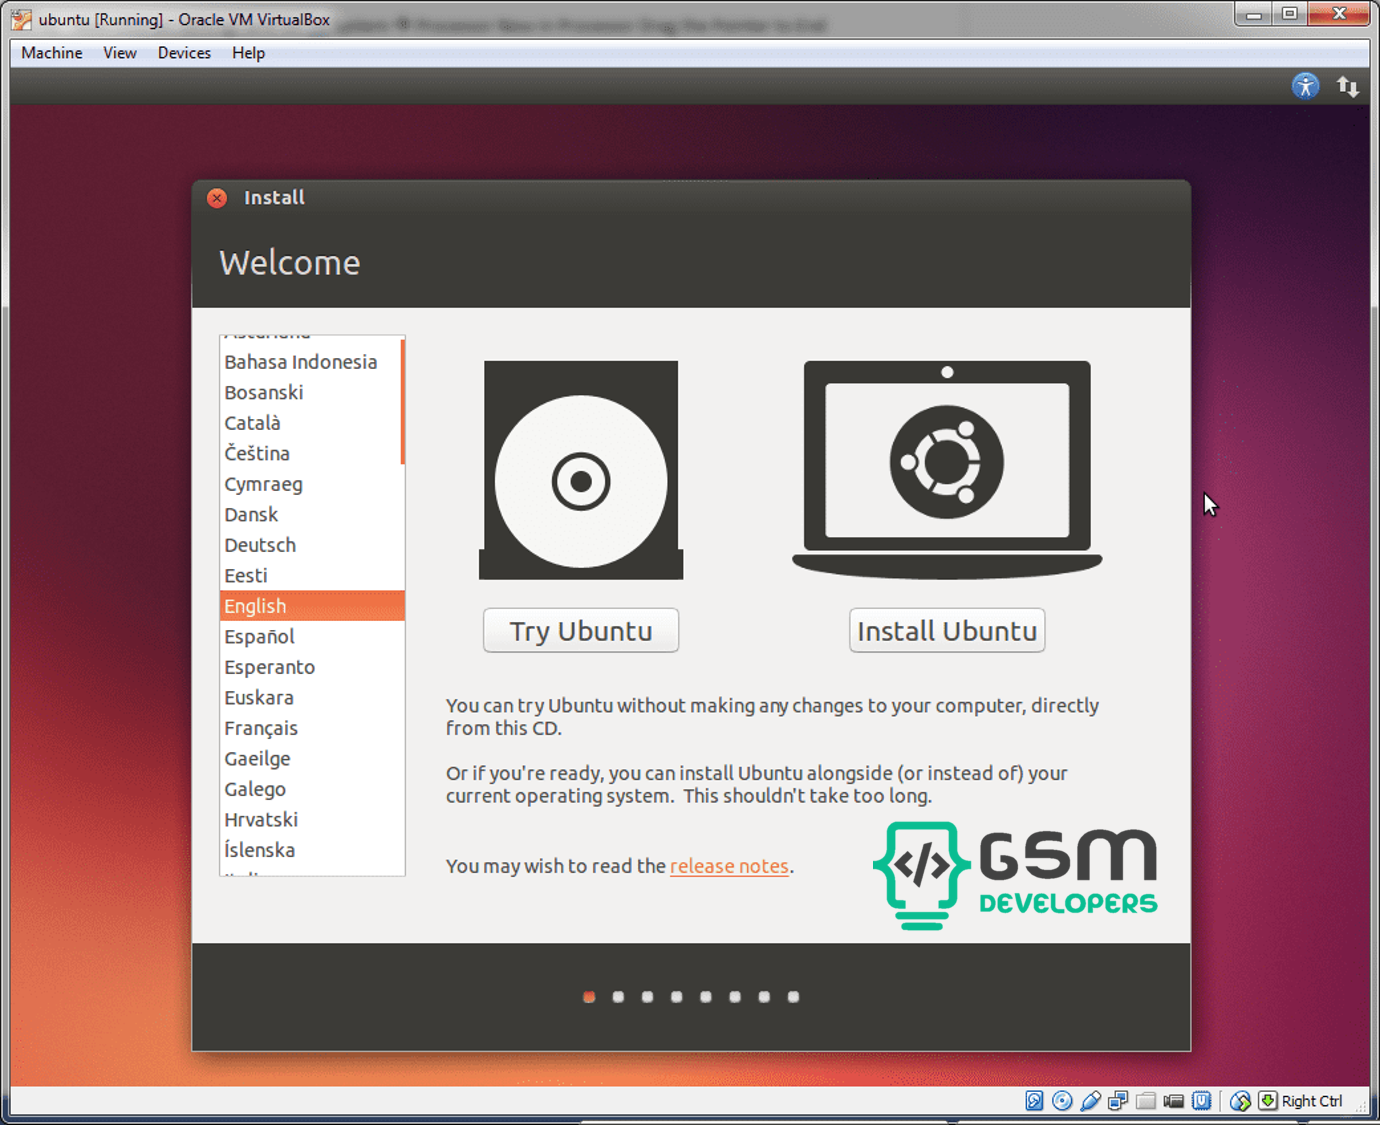 16-gsmdevelopers-com-ubunto